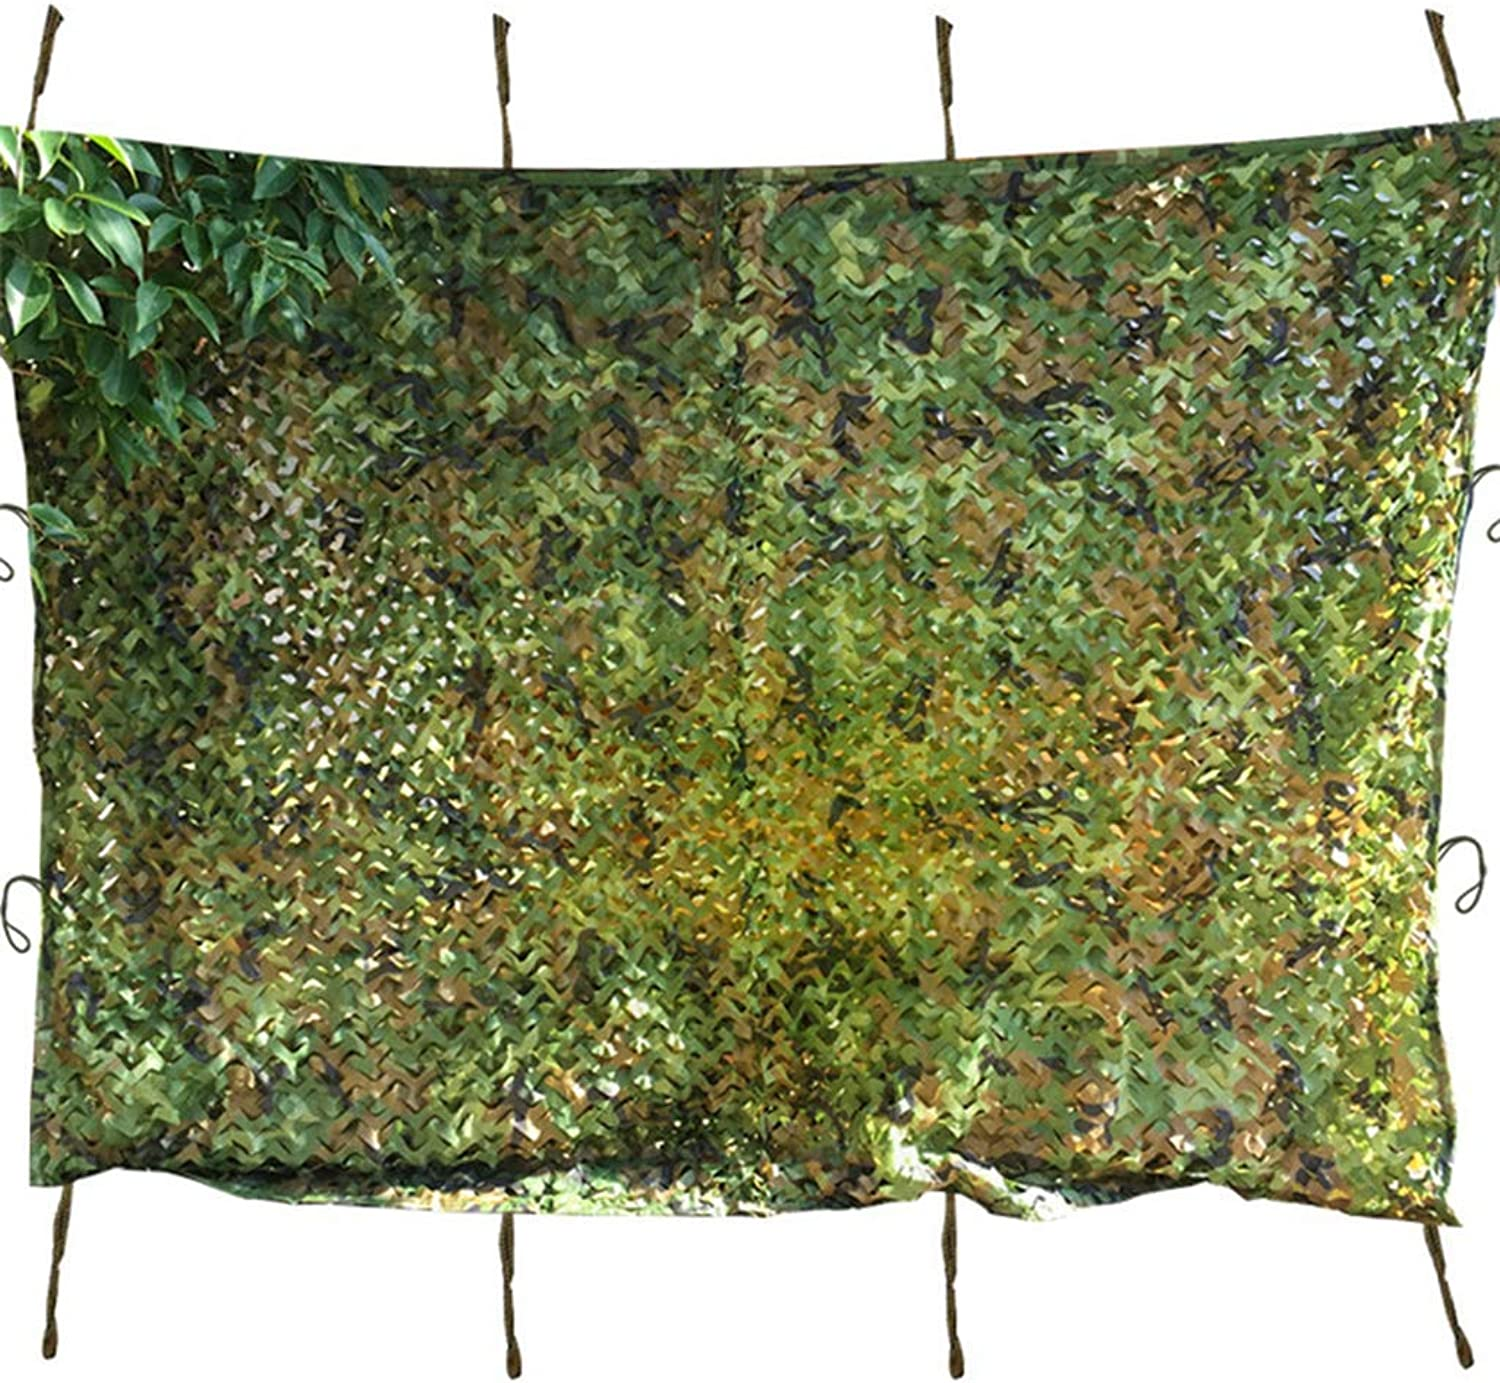 Woodland Camouflage Net Camping Sunscreen Netting Decoration Car Covering,2  3m